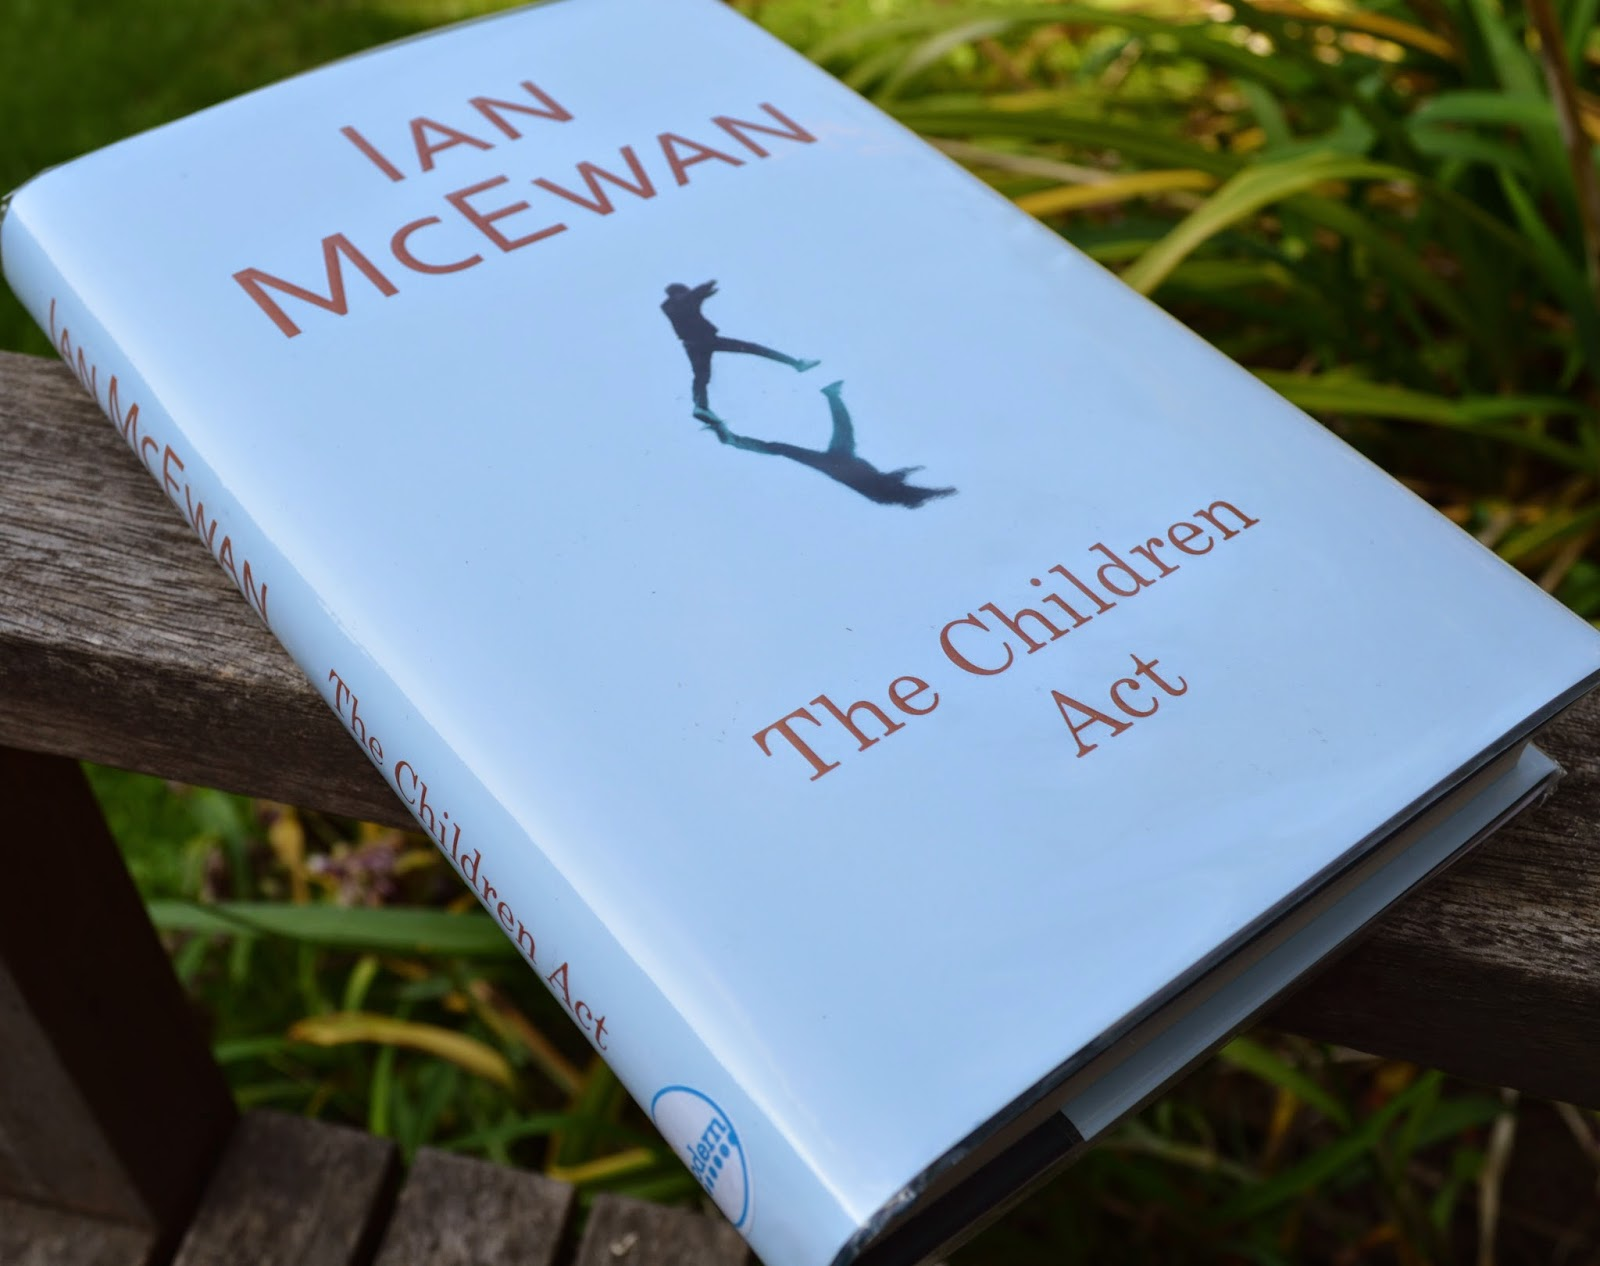 Ian McEwan, The Children's Act, hardback, novel, fiction, review, law, refusal of medical treatment, published 2014, opinion,